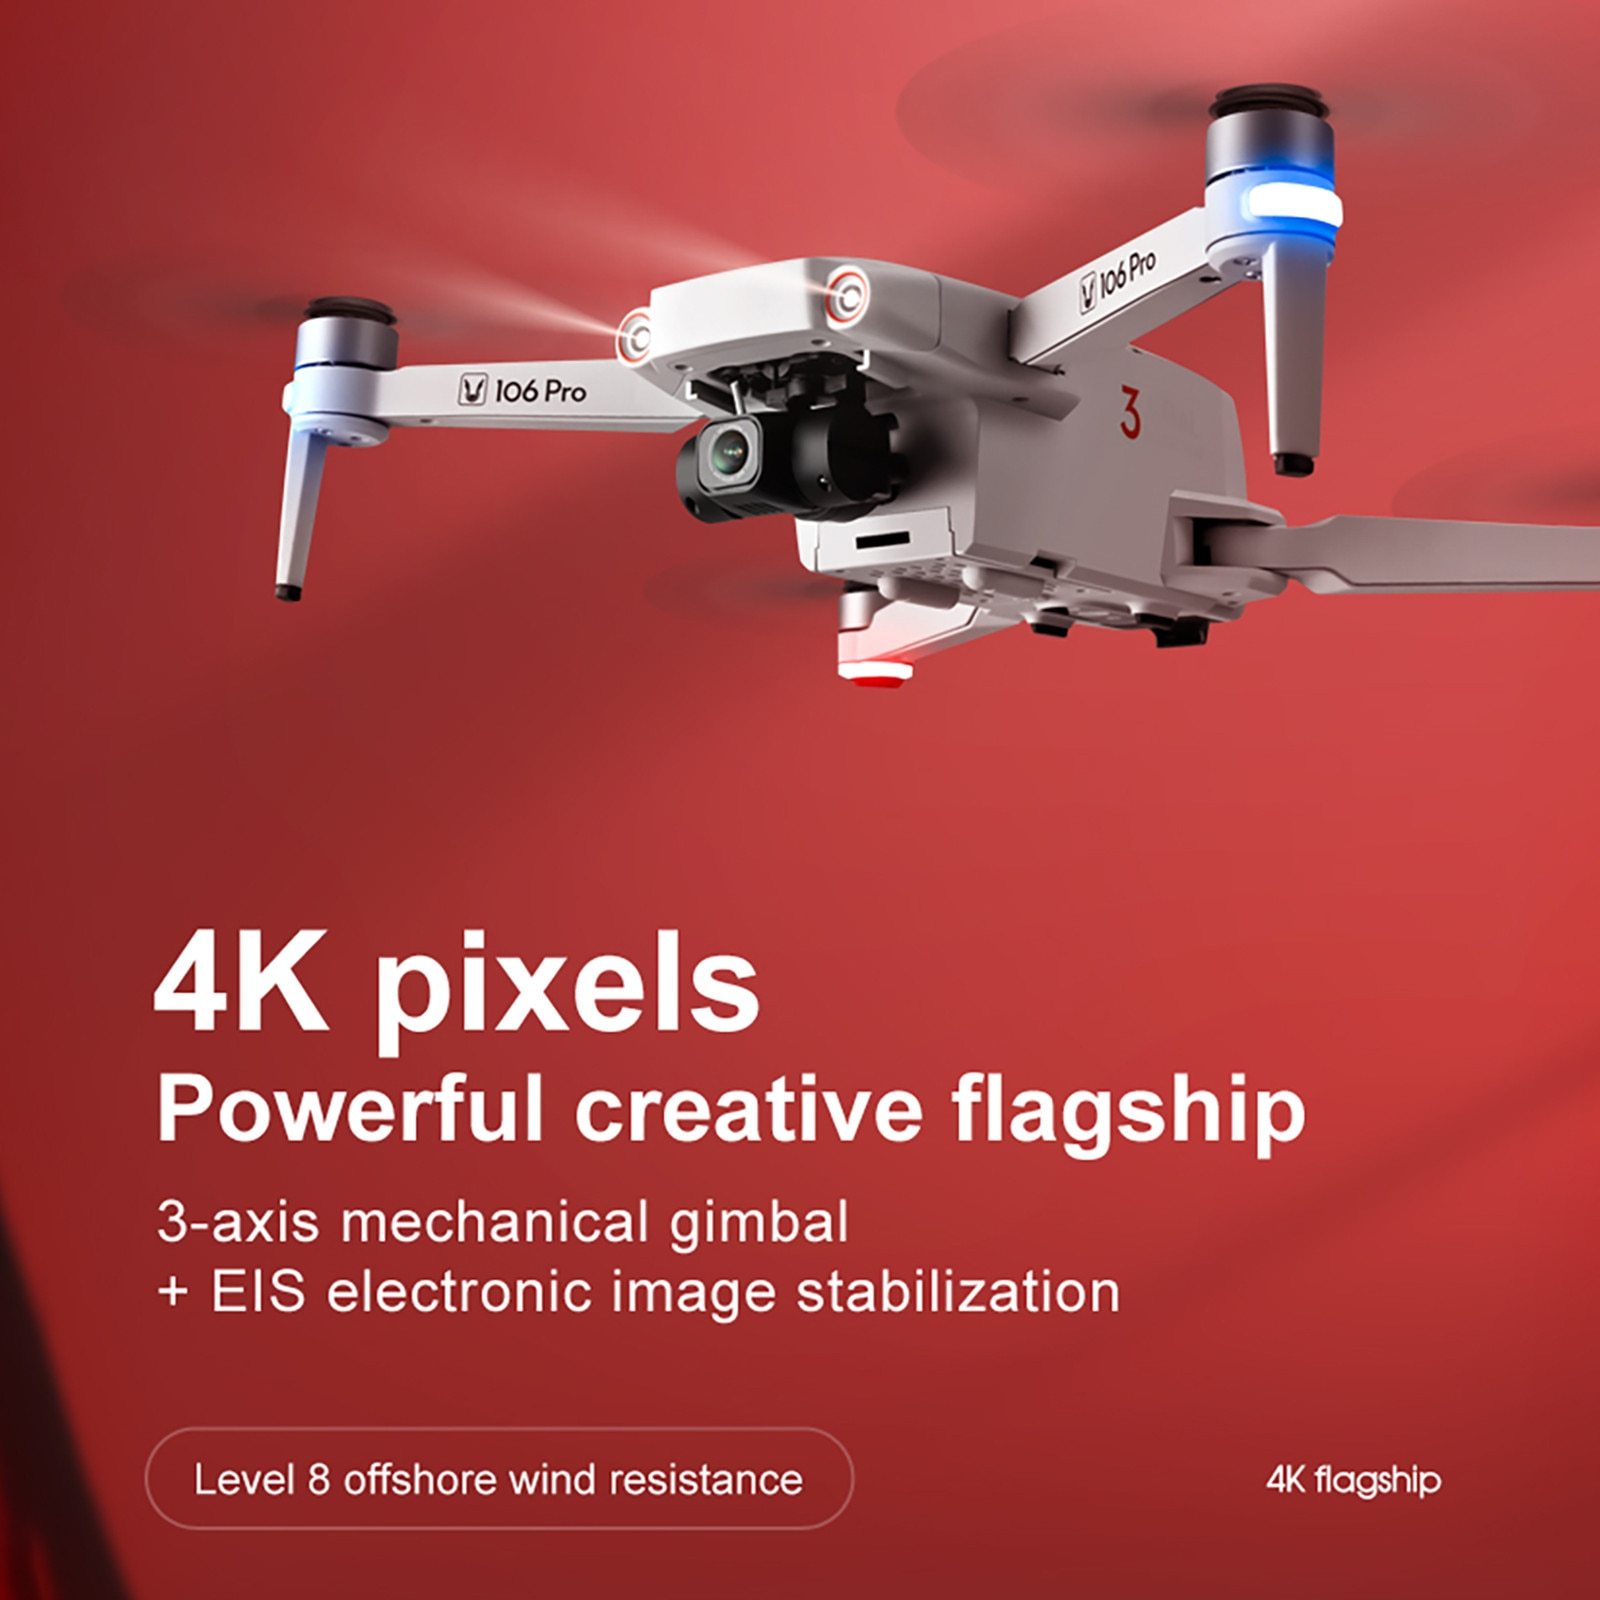 2021 New Year Gift Jj106 Pro 1.2km Fpv 3-axis Gimbal 4k Camera Wifi Gps Rc Drone Quadcopte High Altitude Flight